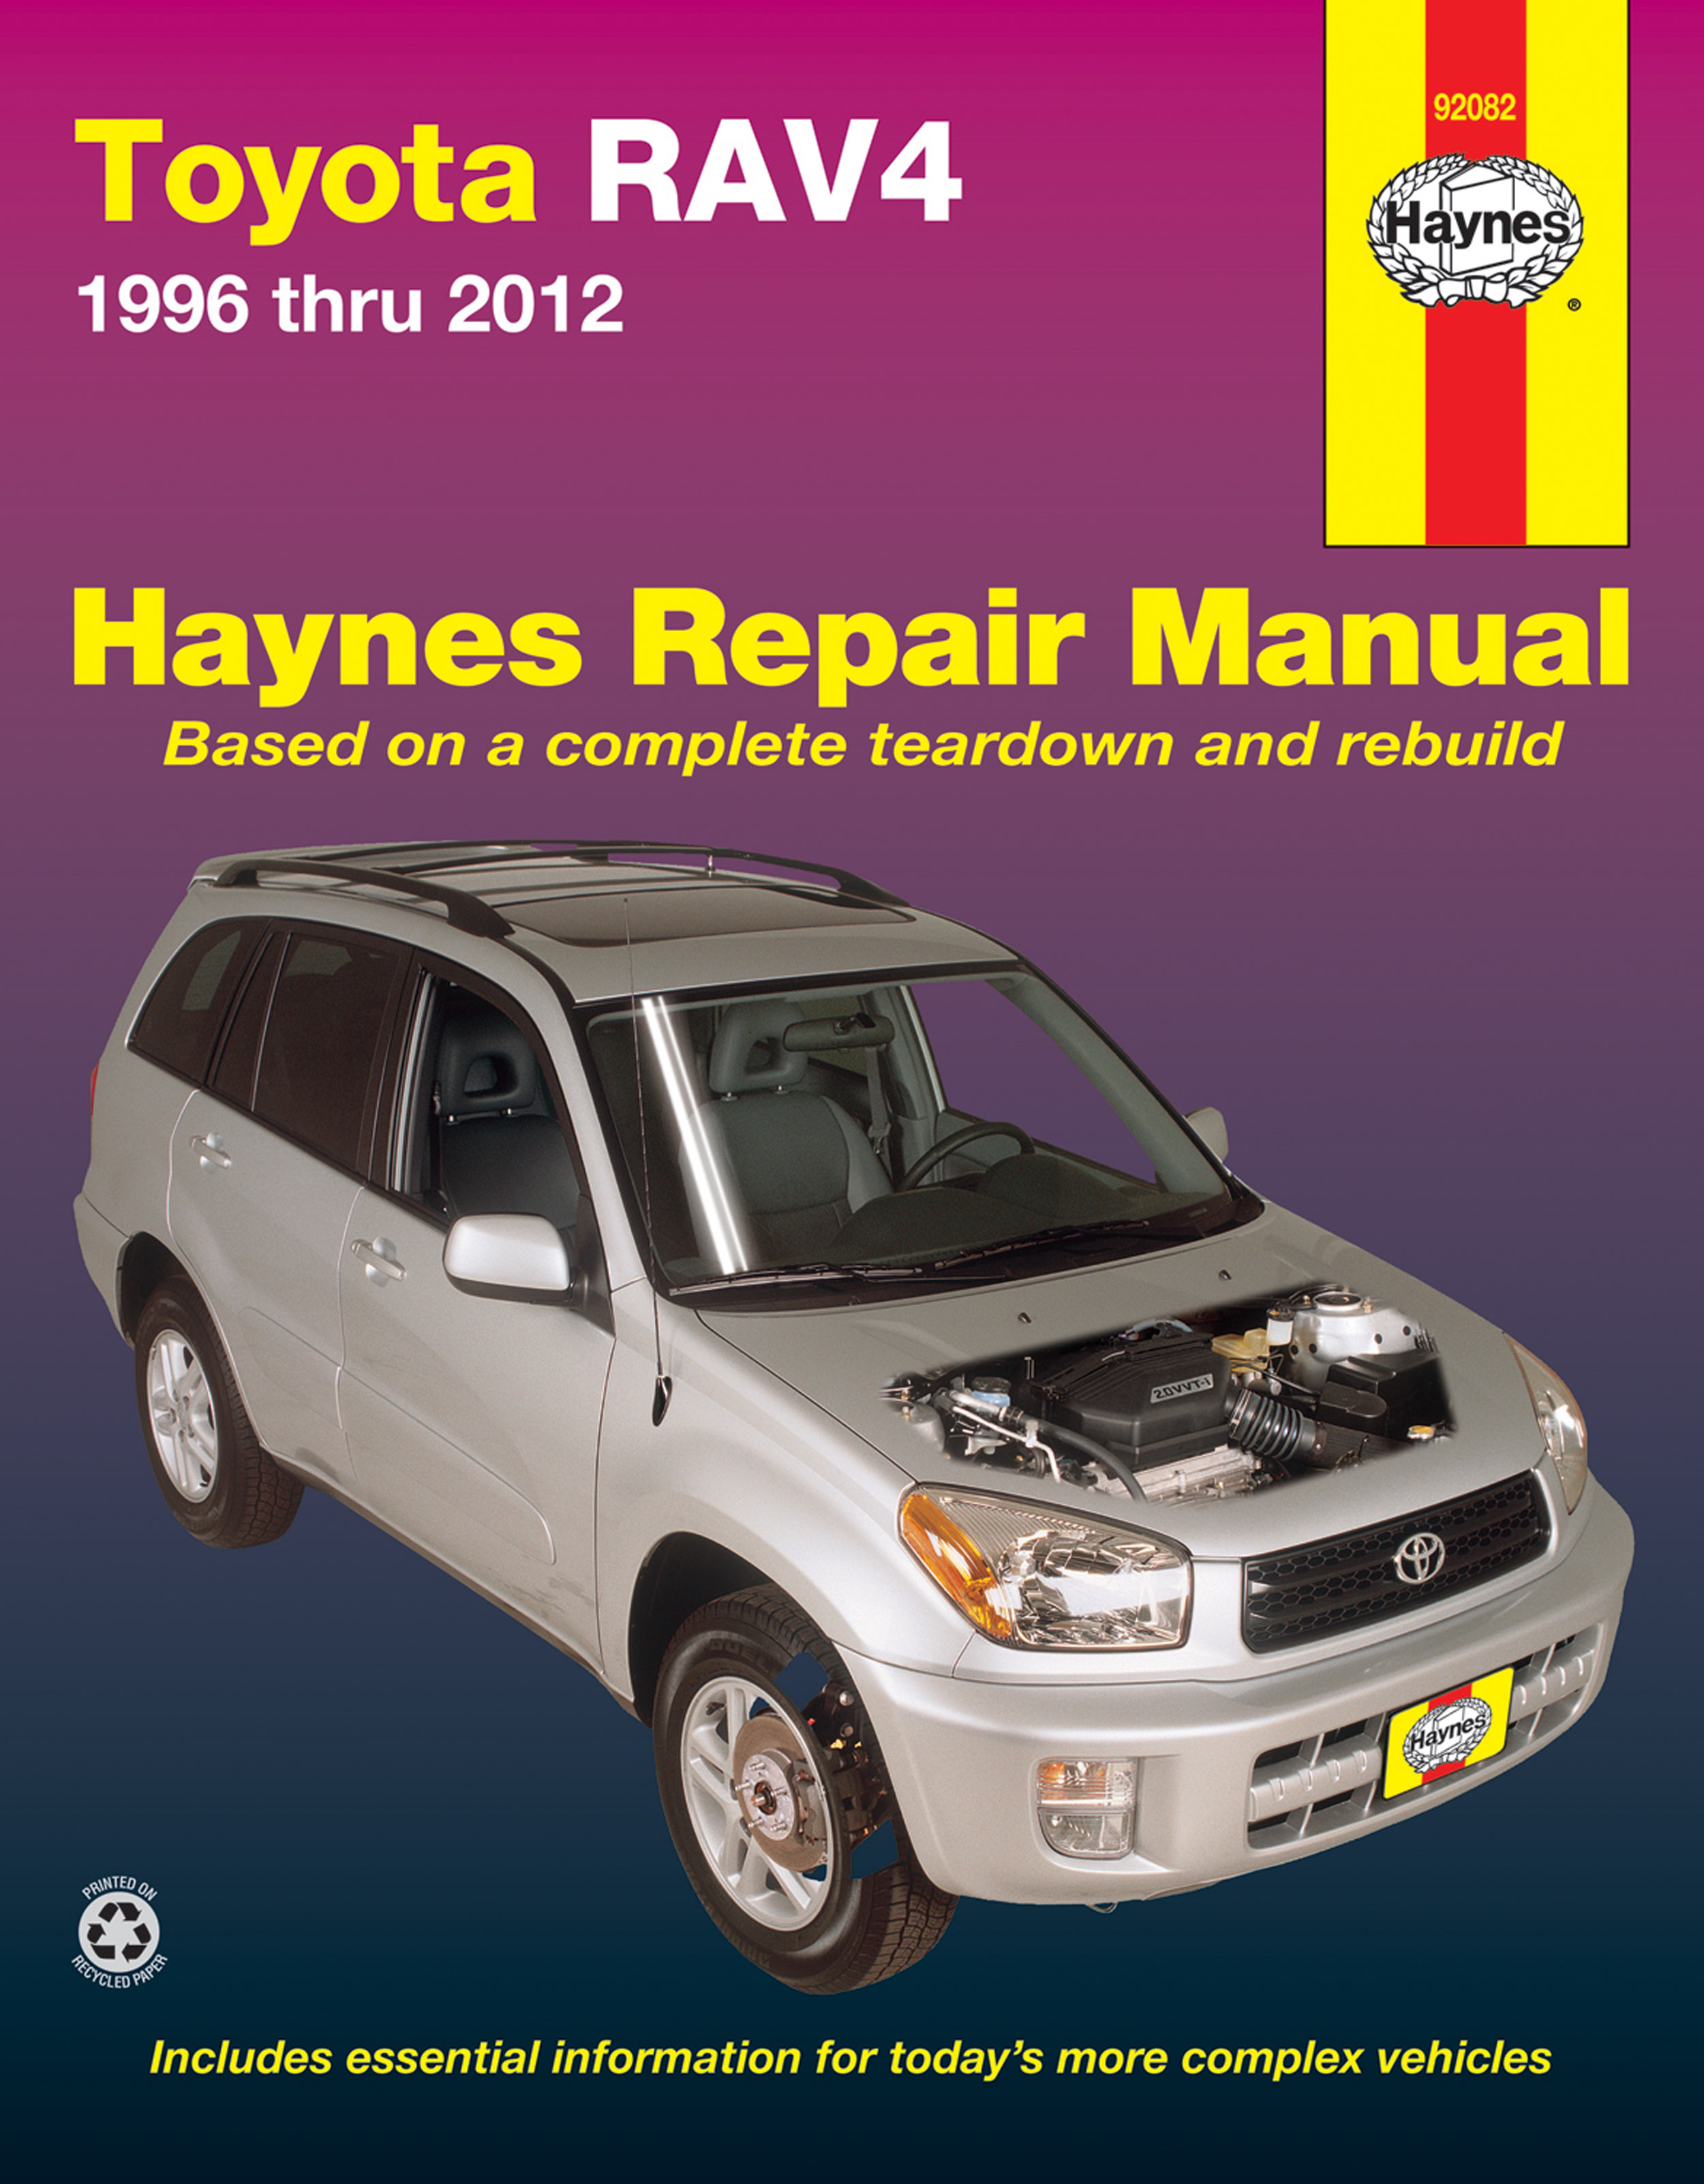 Enlarge Toyota RAV4 (96-12) Haynes Repair Manual